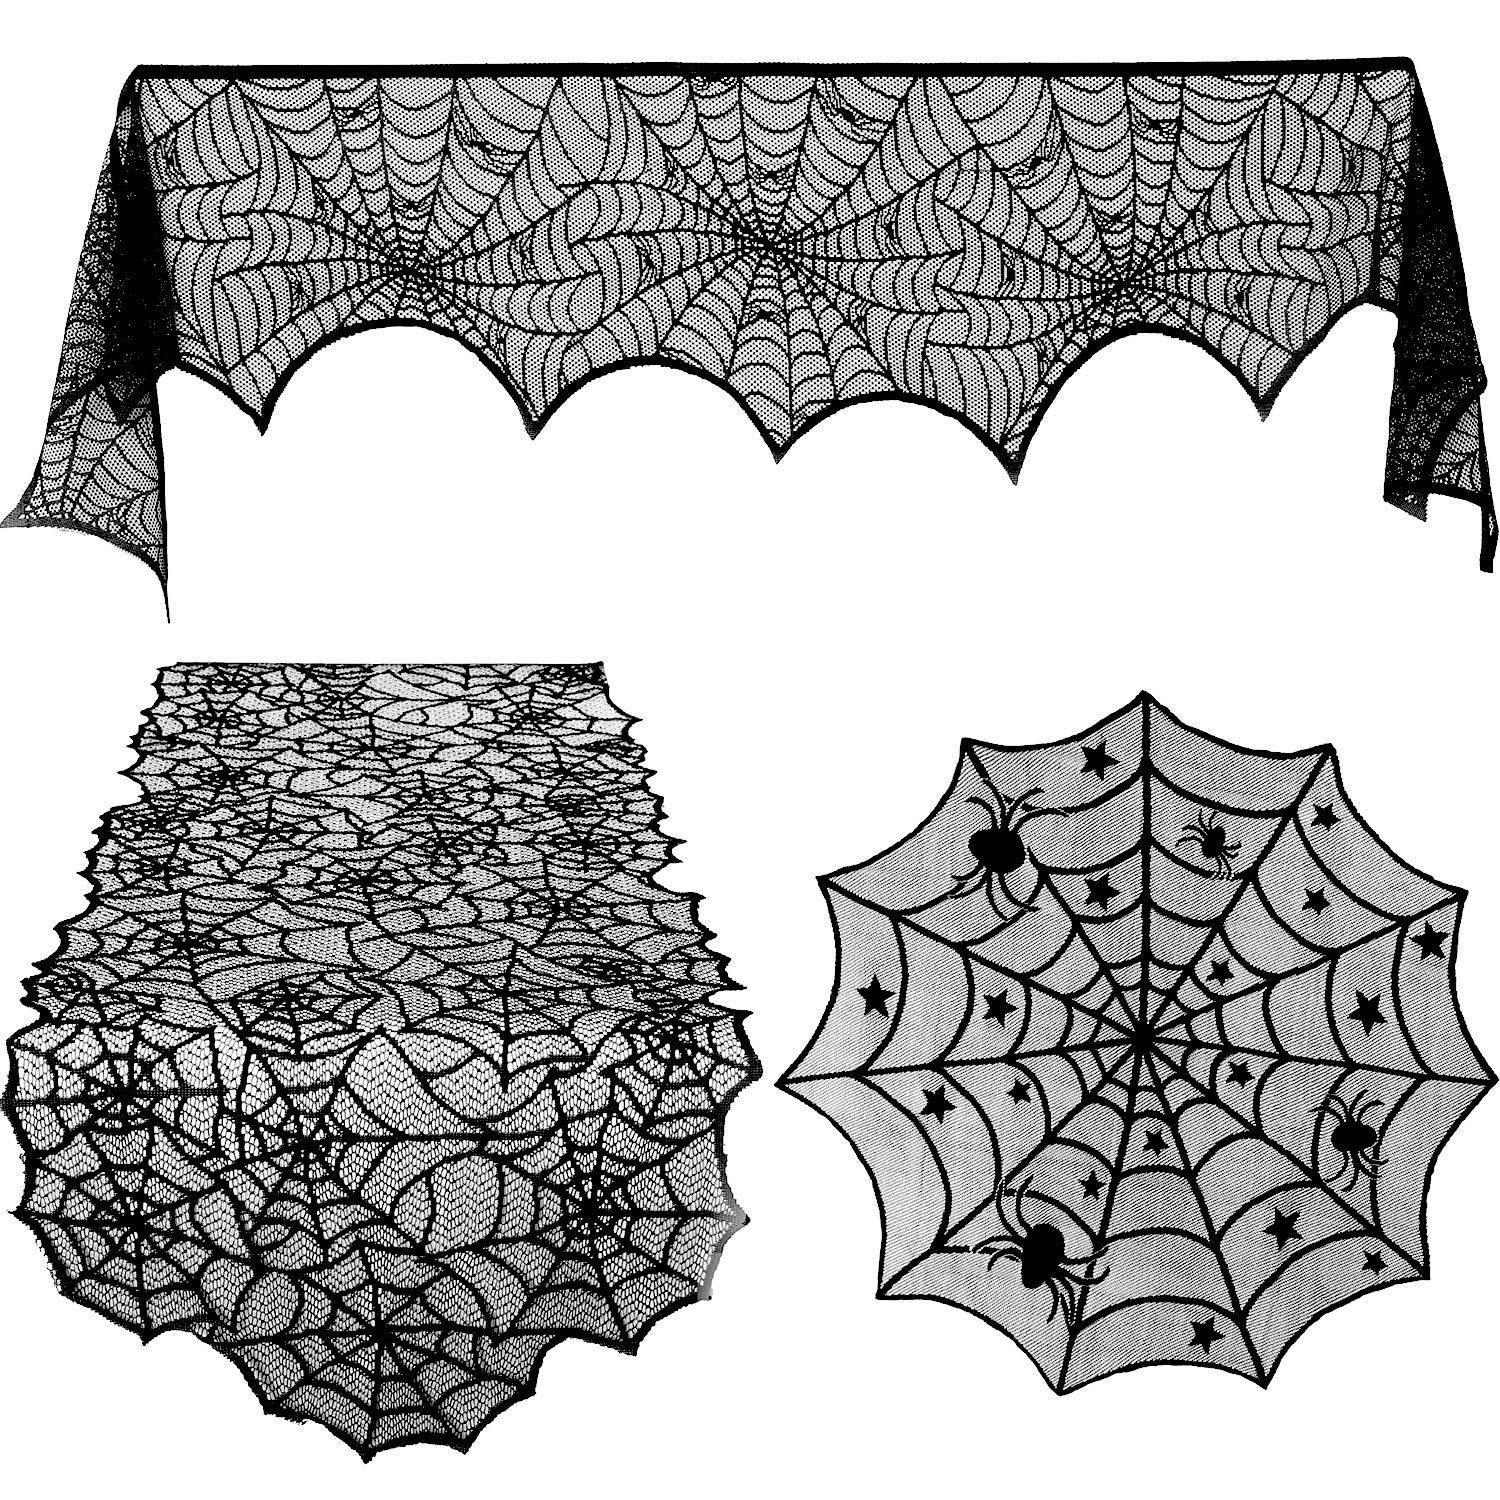 Blulu 3 Pieces Halloween Lace Spiderweb Tablecloth Fireplace Mantle Table Runner Round Spider Web Table Cover Topper for Halloween Home Party Decor, 3 Sizes